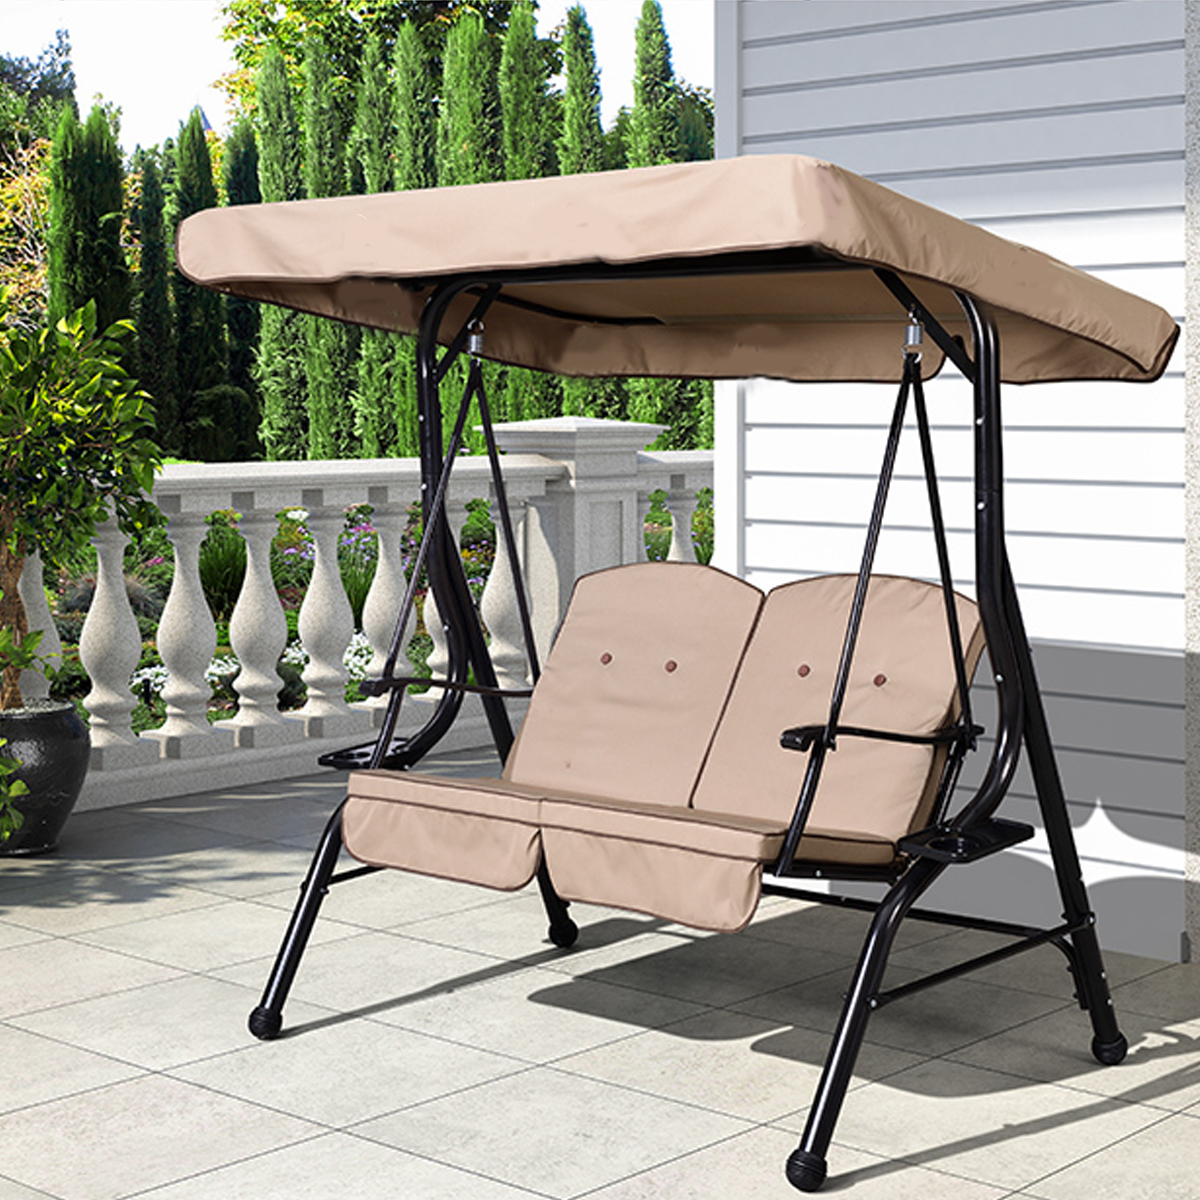 Tents Outdoor 3 Seater Garden Swing Chair Replacement